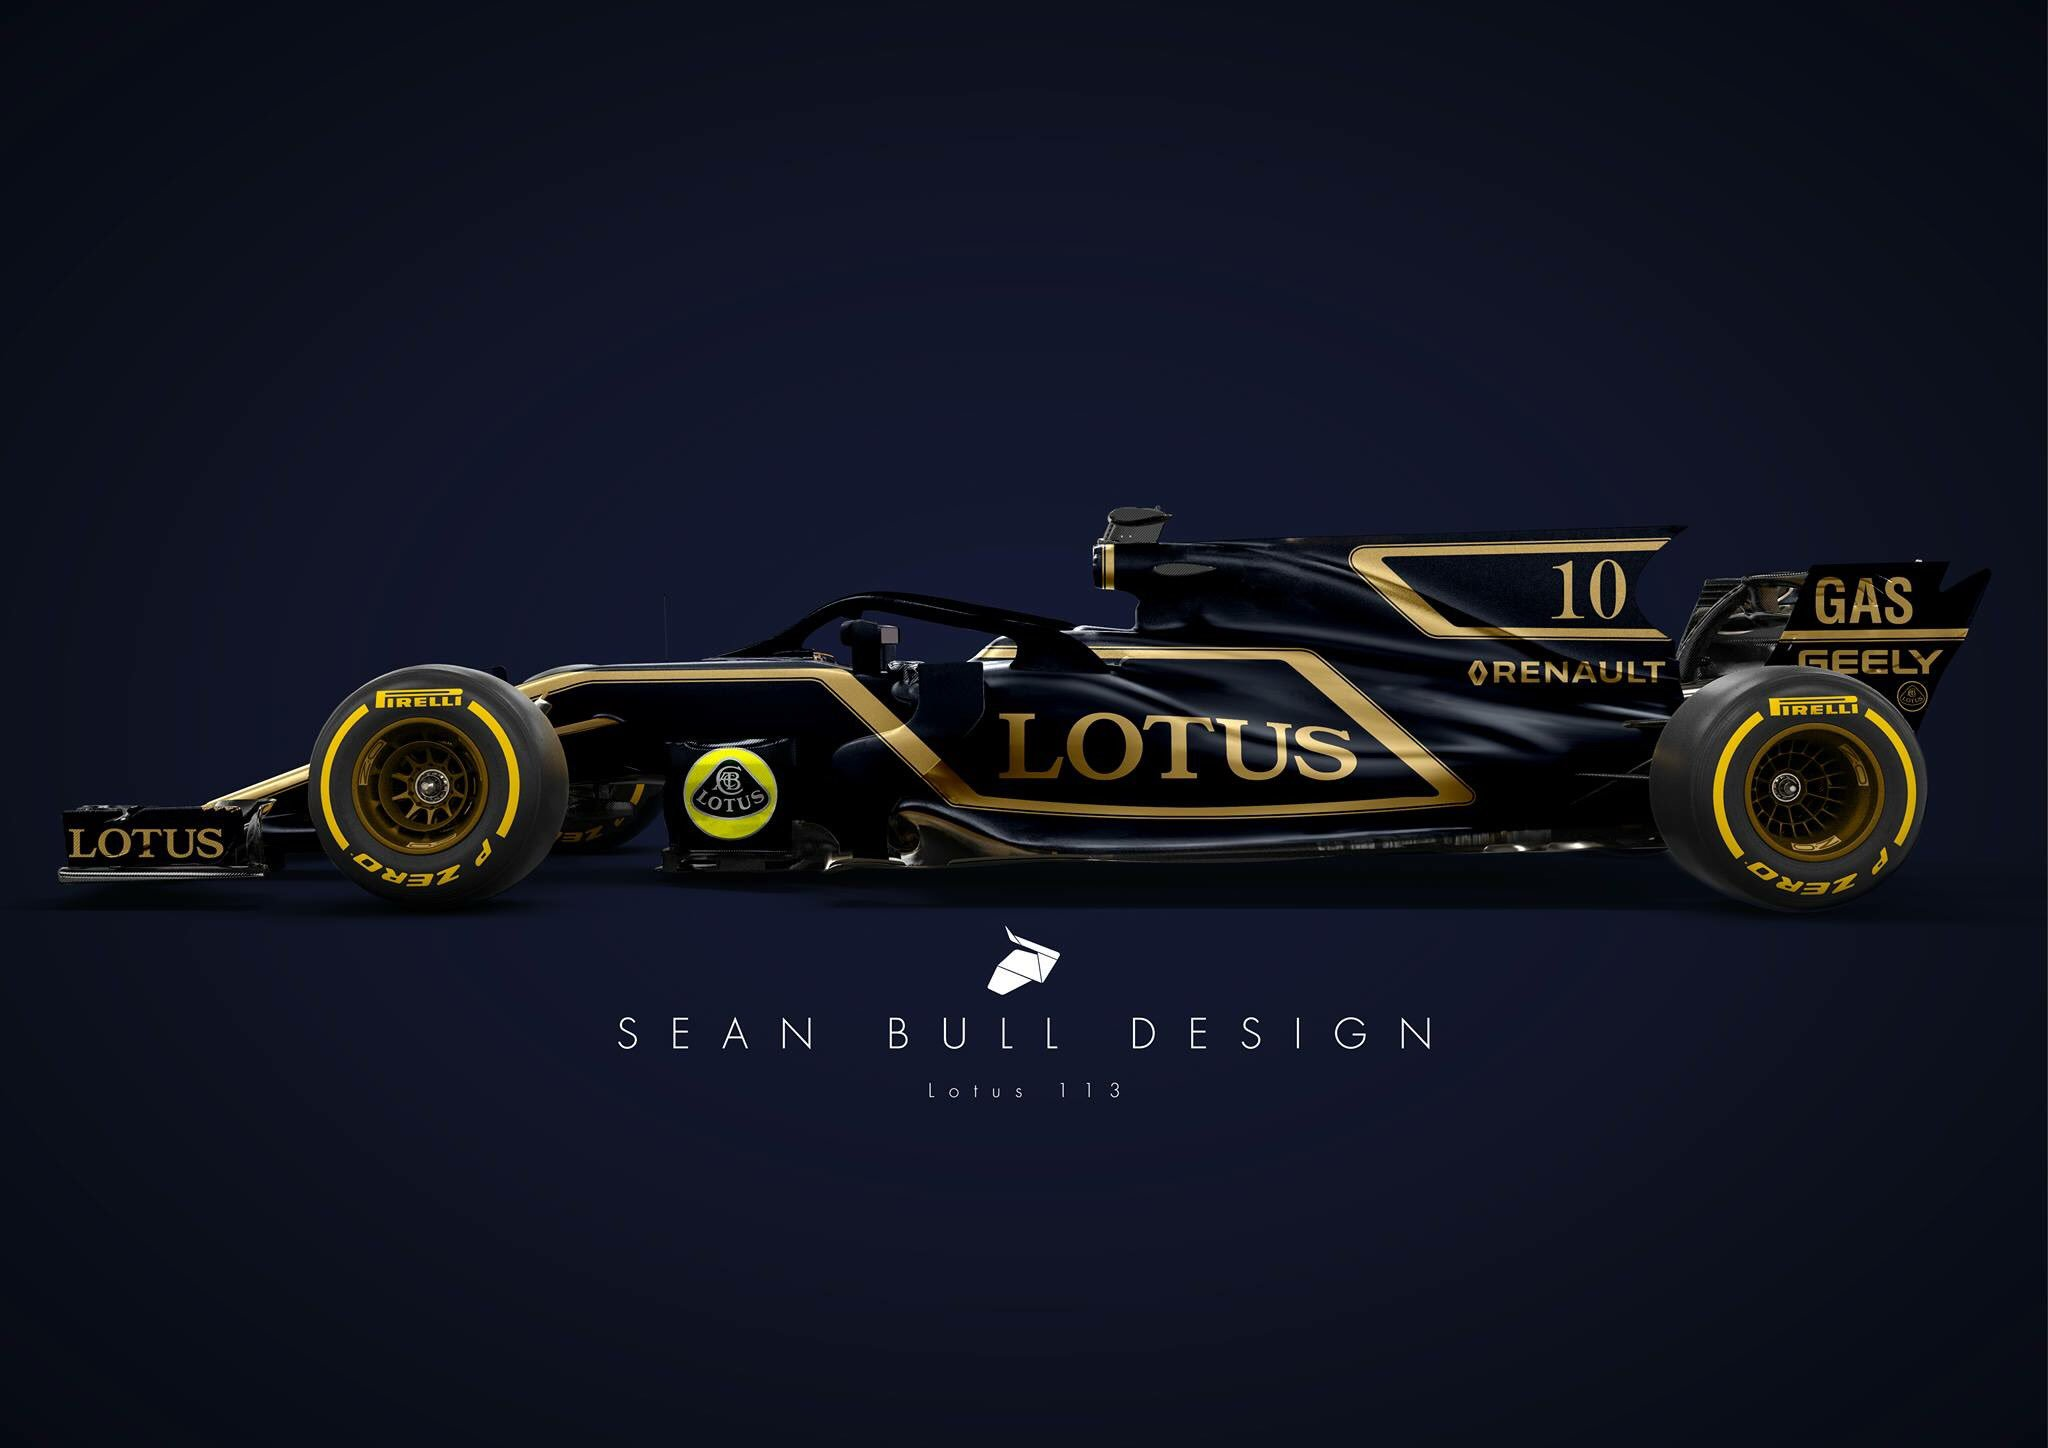 Some @grouplotusplc livery concepts, now owned by geely, could we see another return?   #f1 #lotus #f12017 #gasly https://t.co/LzqCvYhFtr